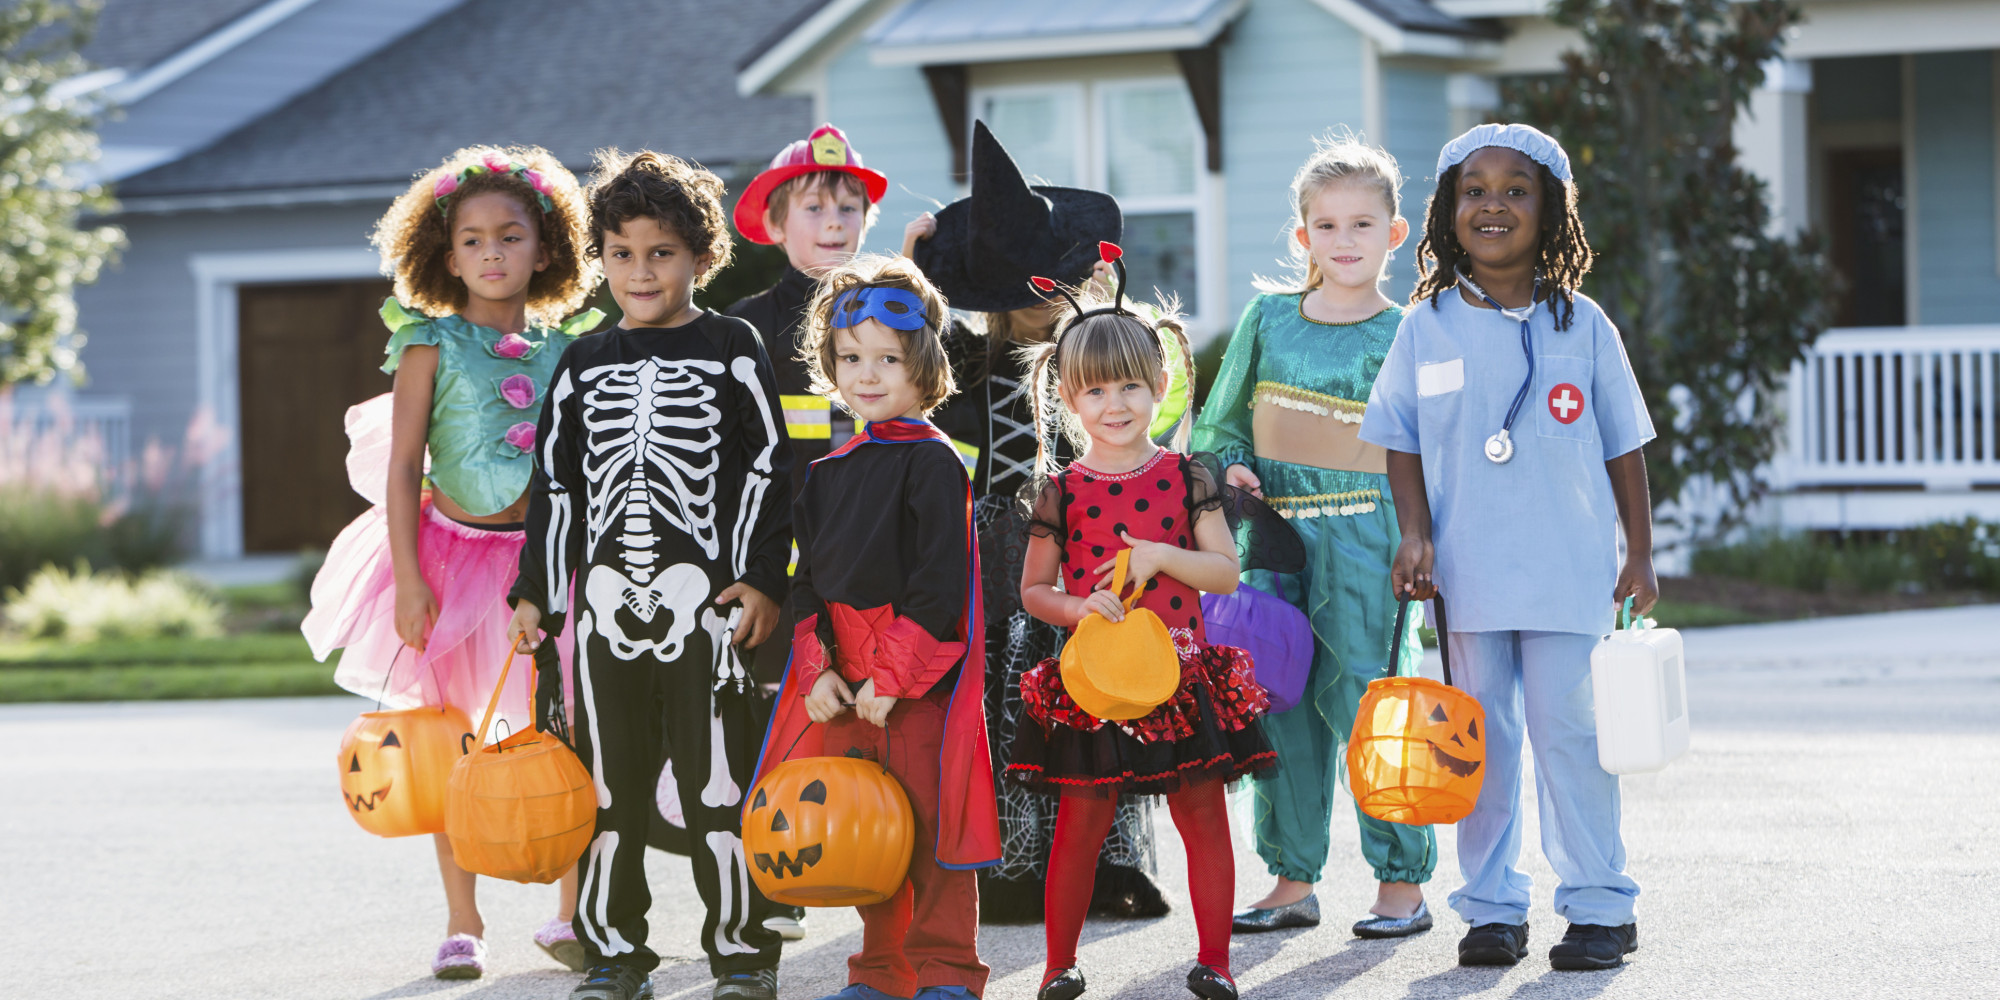 A Simple Trick Or Treating Etiquette Guide